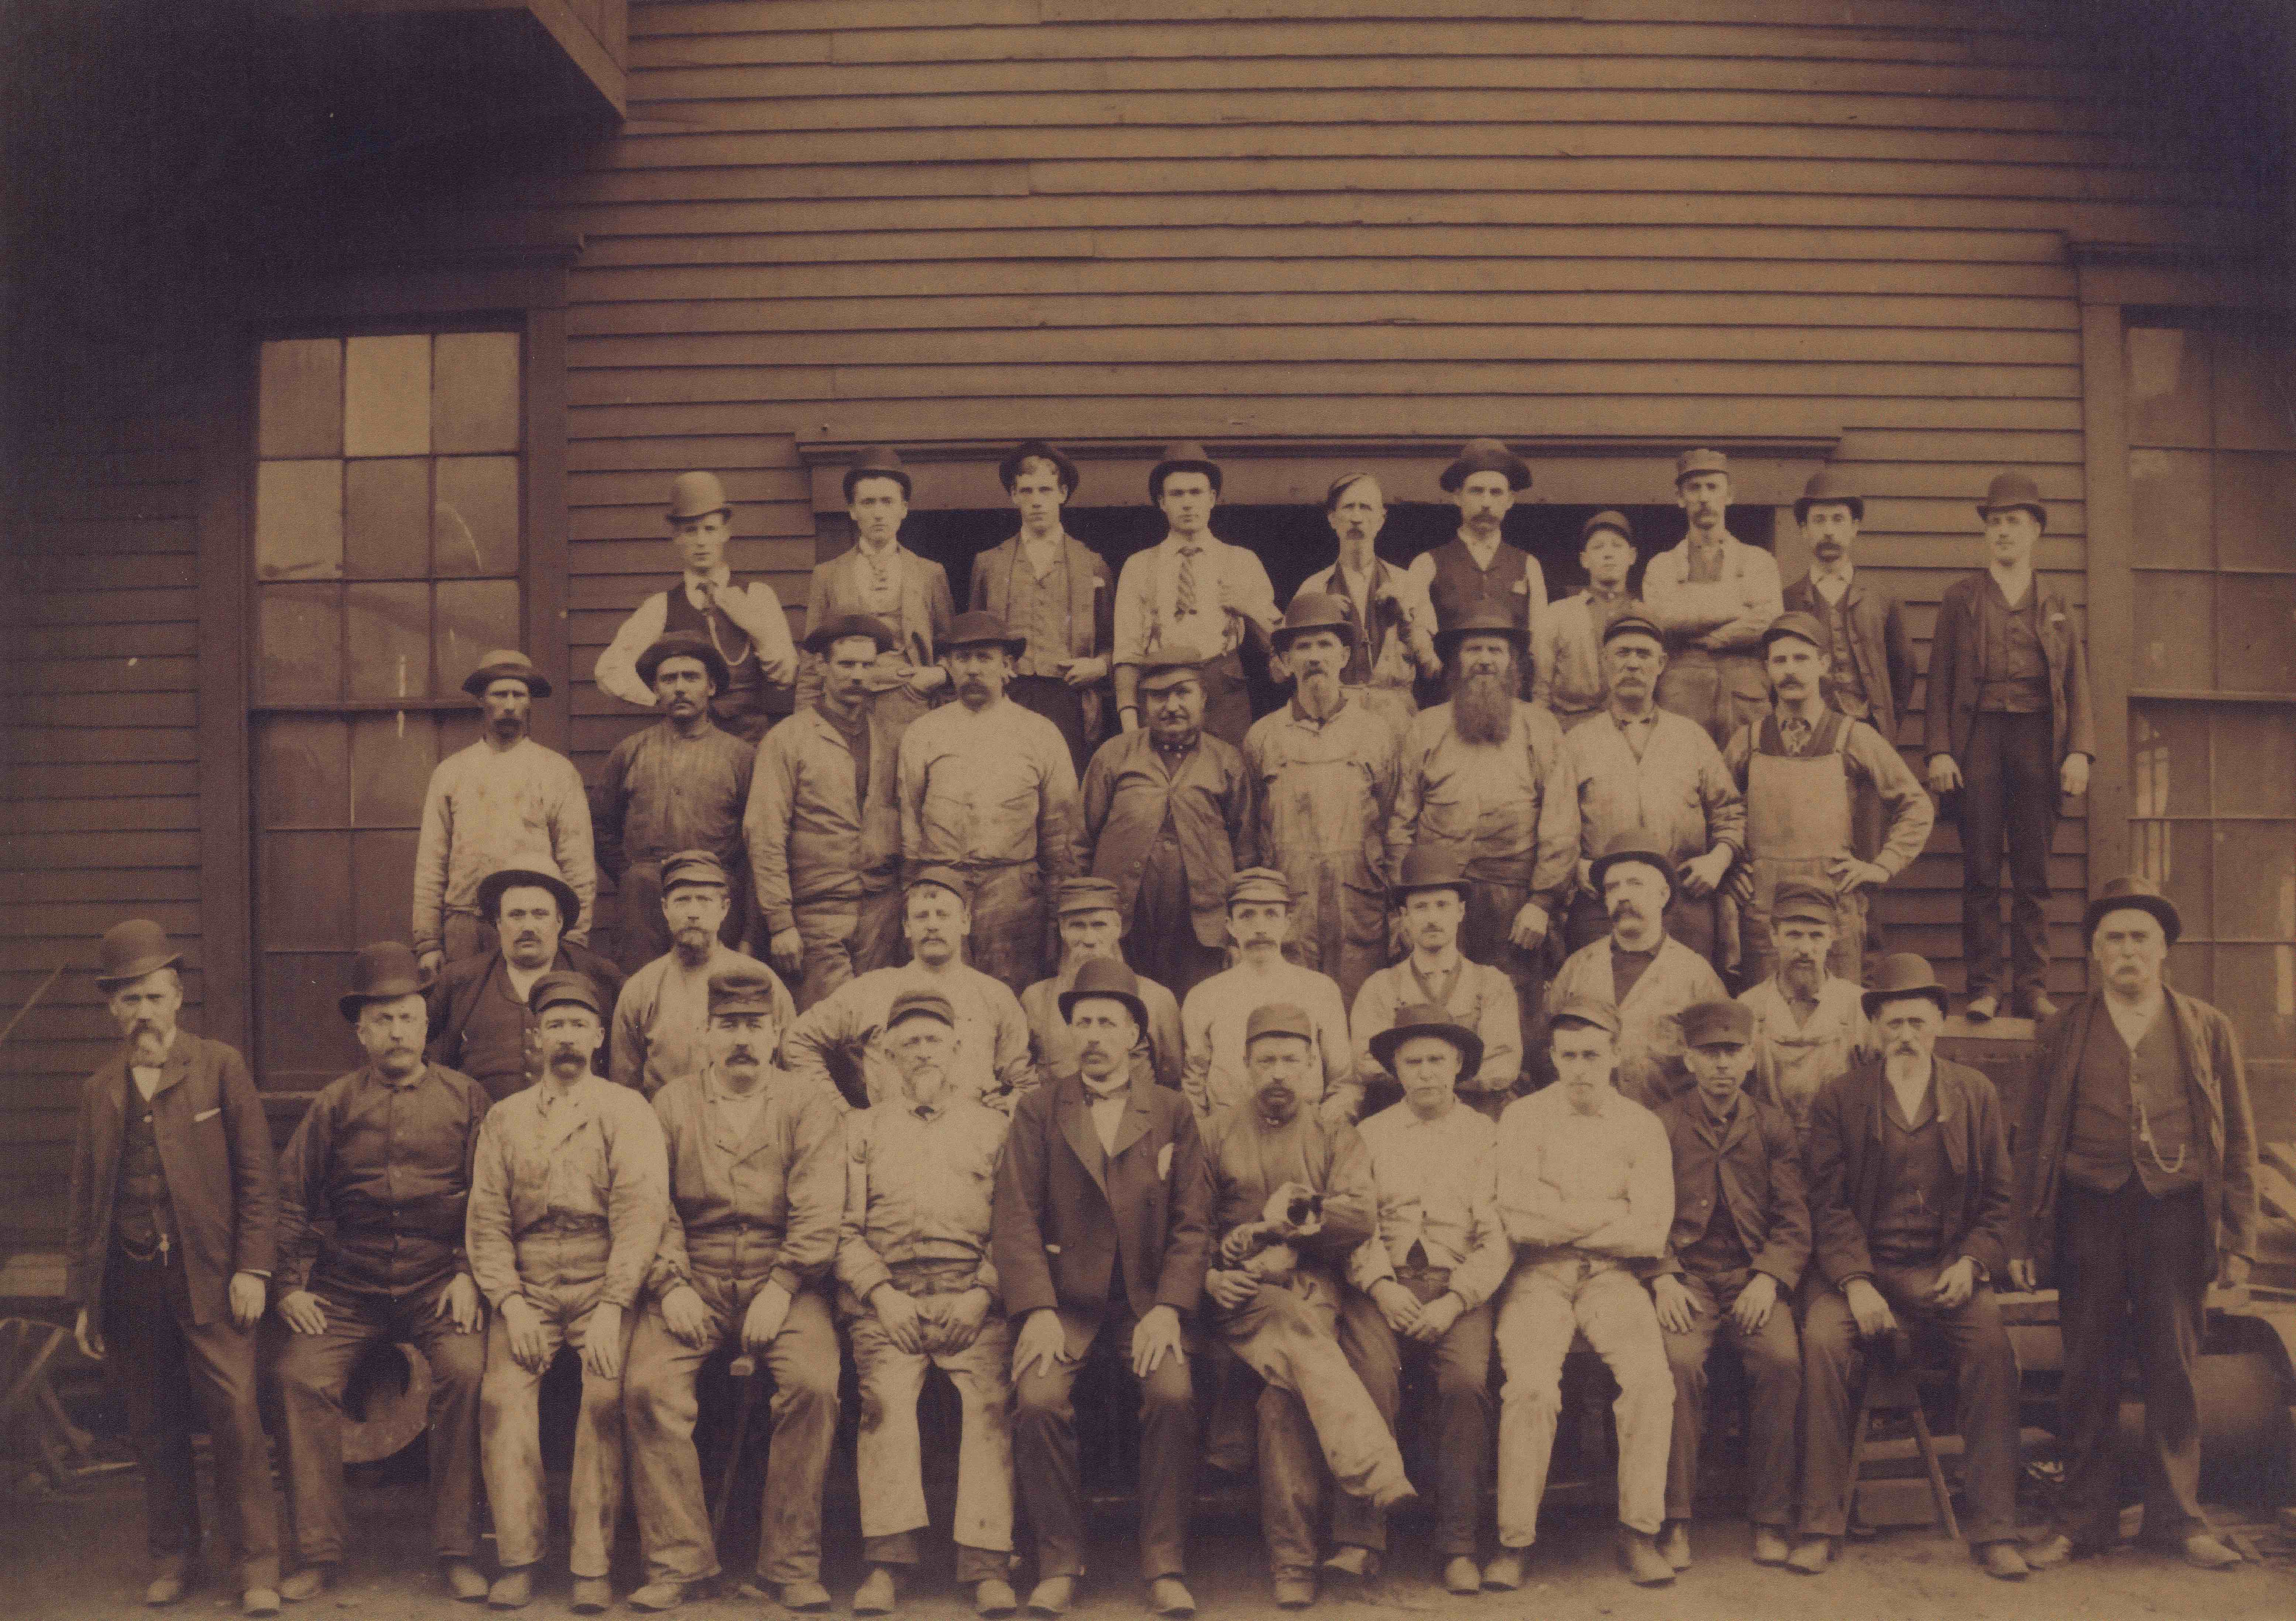 <table class=&quot;lightbox&quot;><tr><td colspan=2 class=&quot;lightbox-title&quot;>North Chicago Rolling Mill Workmen</td></tr><tr><td colspan=2 class=&quot;lightbox-caption&quot;>39 employees pose for a photograph at the Bay View Rolling Mill. This photo was taken in 1886, the year of the large and deadly workers' strike.</td></tr><tr><td colspan=2 class=&quot;lightbox-spacer&quot;></td></tr><tr class=&quot;lightbox-detail&quot;><td class=&quot;cell-title&quot;>Source: </td><td class=&quot;cell-value&quot;>From the Historic Photo Collection of the Milwaukee Public Library. Reprinted with permission.<br /><a href=&quot;http://content.mpl.org/cdm/singleitem/collection/HstoricPho/id/2682/rec/15&quot; target=&quot;_blank&quot;>Milwaukee Public Library</a></td></tr><tr class=&quot;filler-row&quot;><td colspan=2>&nbsp;</td></tr></table>